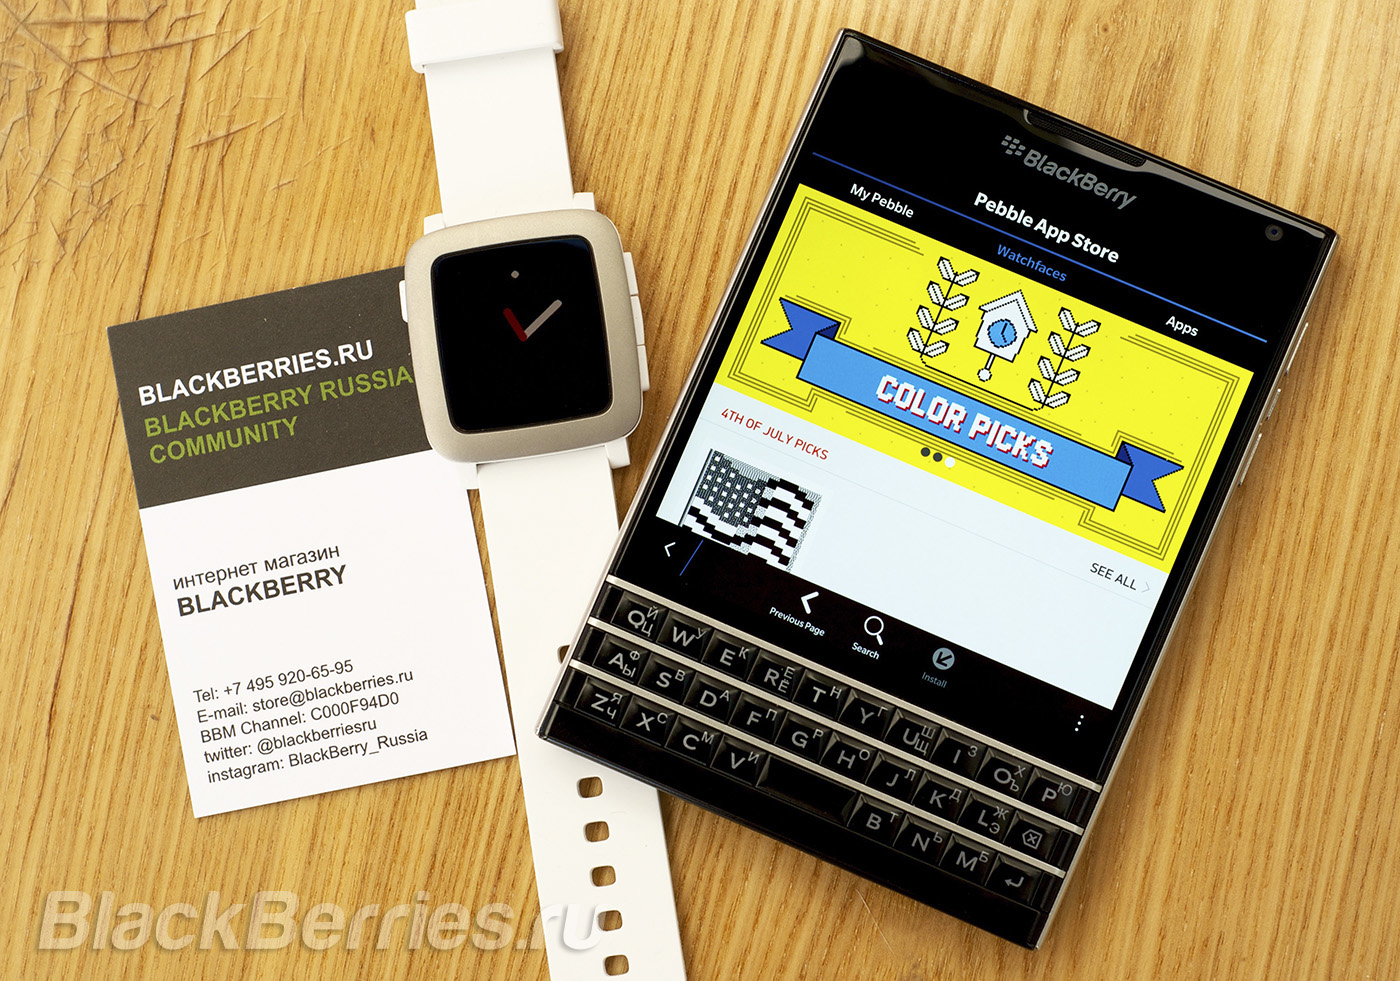 BlackBerry-Passport-Pebble-Time-12